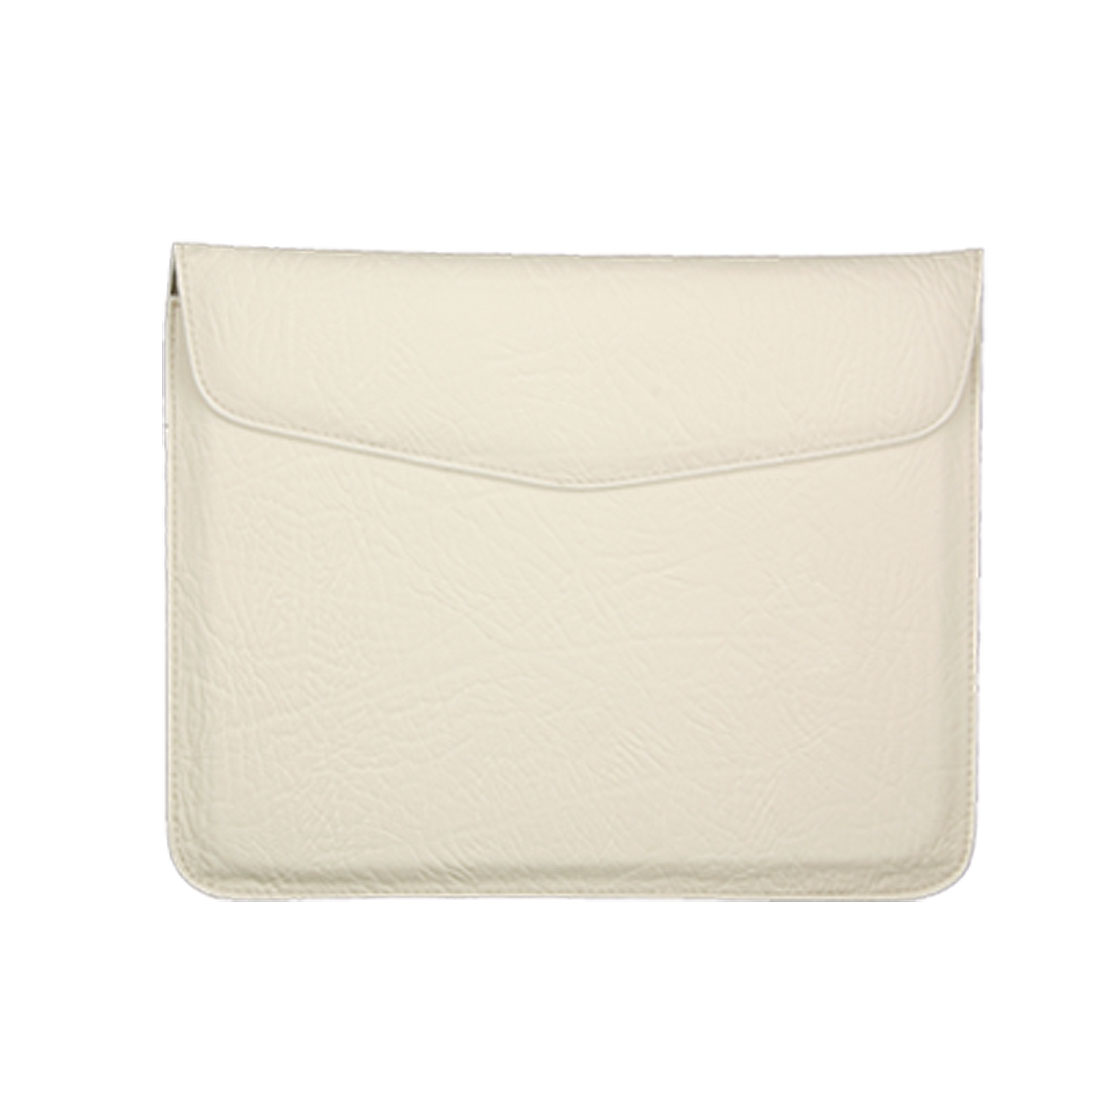 Faux Leather Briefcase Style Bag for iPad 1 White